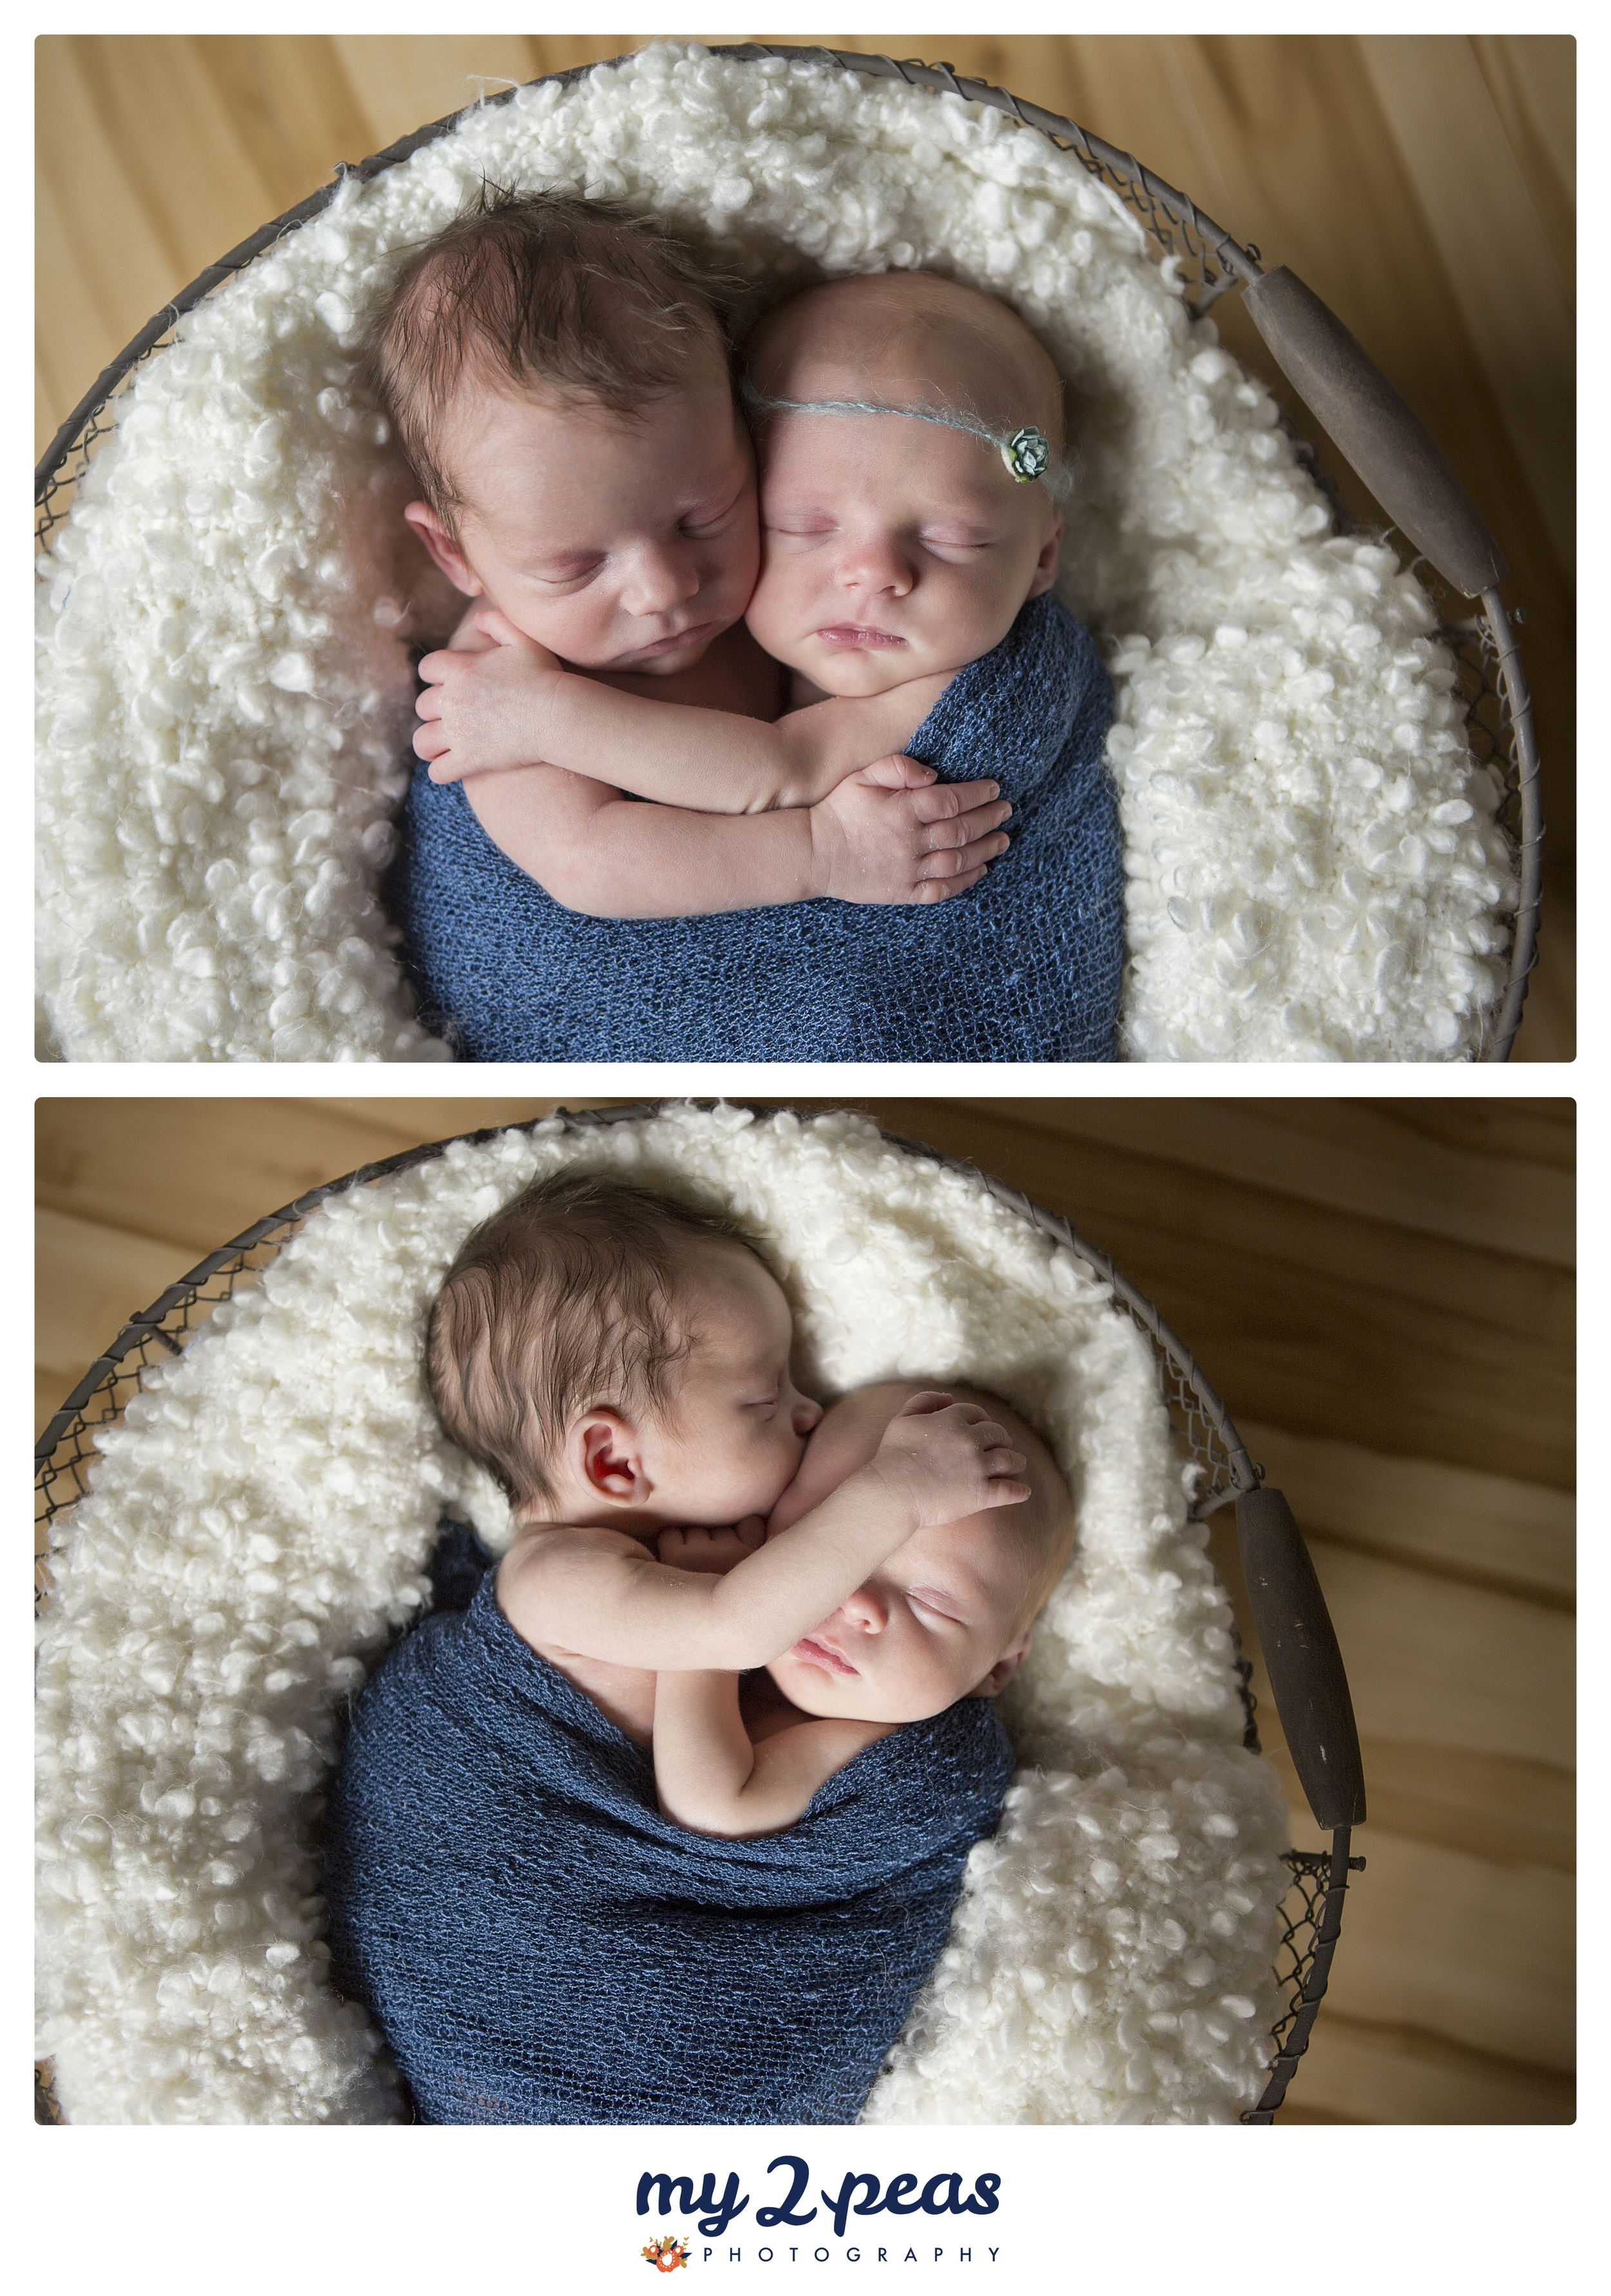 We all had a good laugh about the last one... I think we may have said something about how great he was hugging and loving on his sister and how someday they will probably fight... LOL!